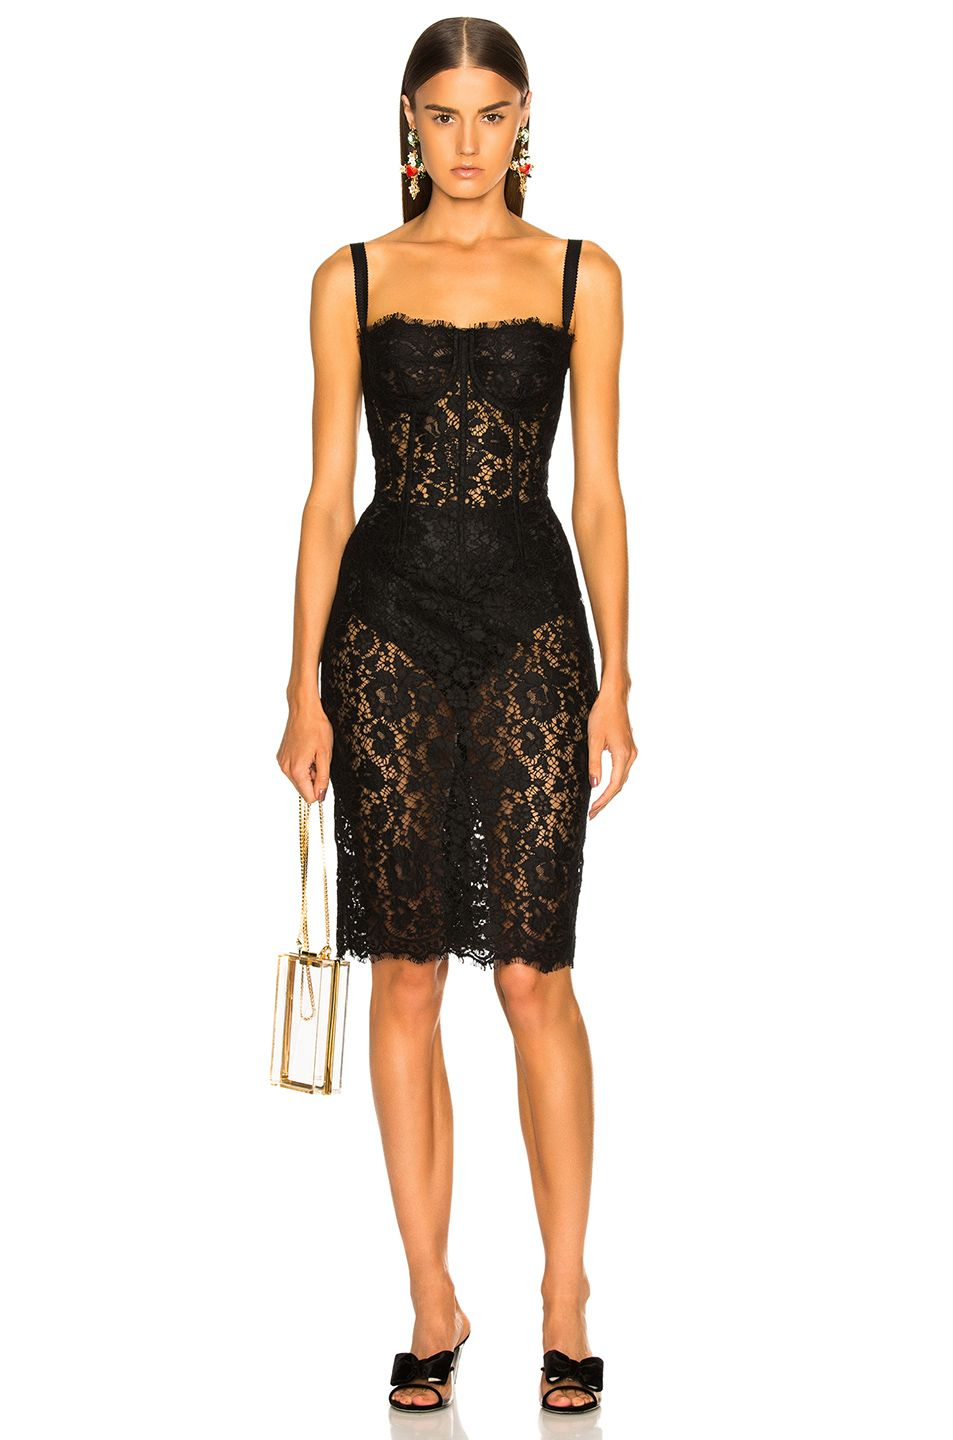 Image of dolce u gabbana lace bustier dress in black fashion and